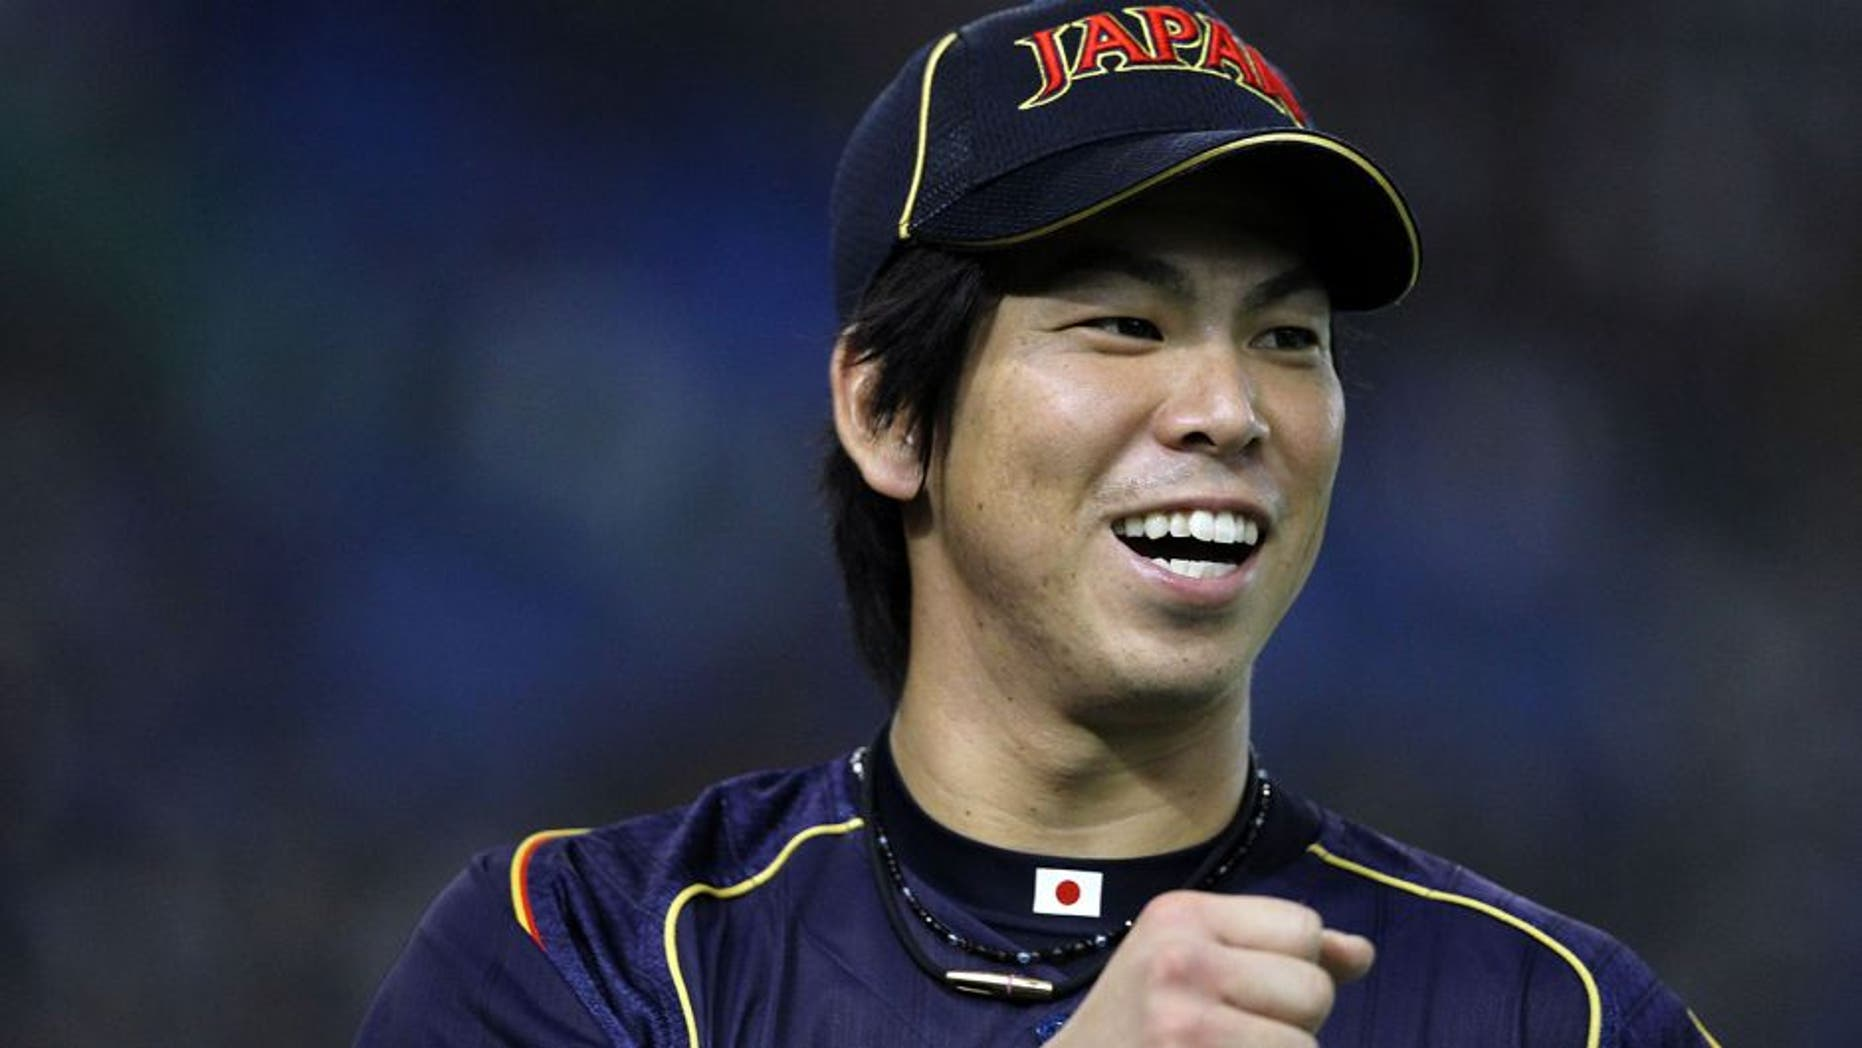 TOKYO, JAPAN - MARCH 10: Pitcher Kenta Maeda #20 of Japan celebrates after in the bottom half of the second inning during the World Baseball Classic Second Round Pool 1 game between Japan and the Netherlands at Tokyo Dome on March 10, 2013 in Tokyo, Japan. (Photo by Koji Watanabe/Getty Images)